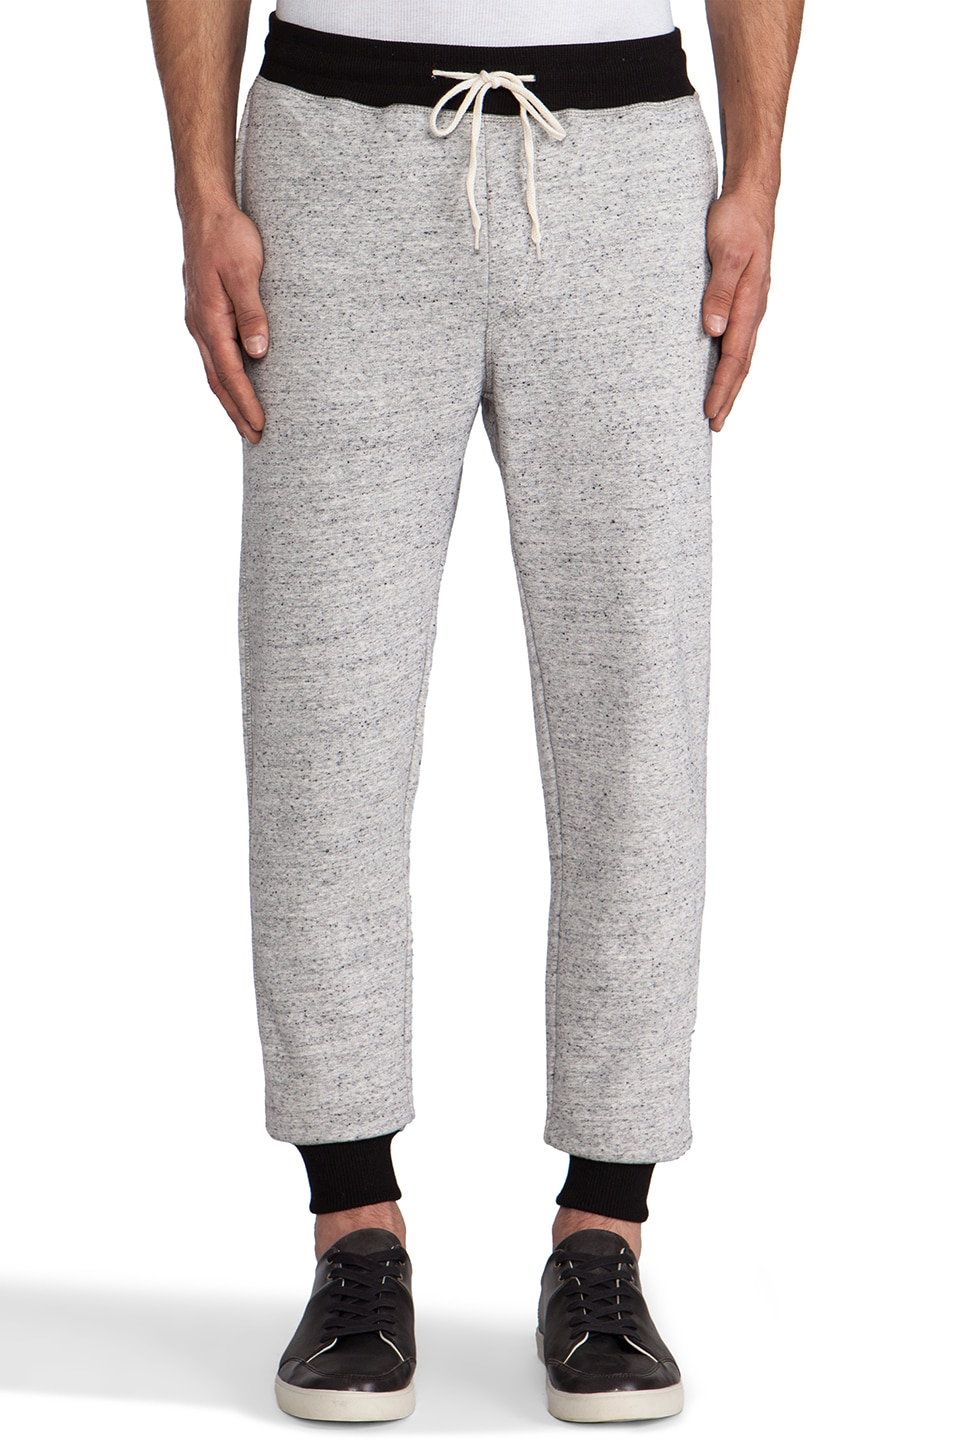 Shades of Grey by Micah Cohen Lounge Pant in Speckled Grey